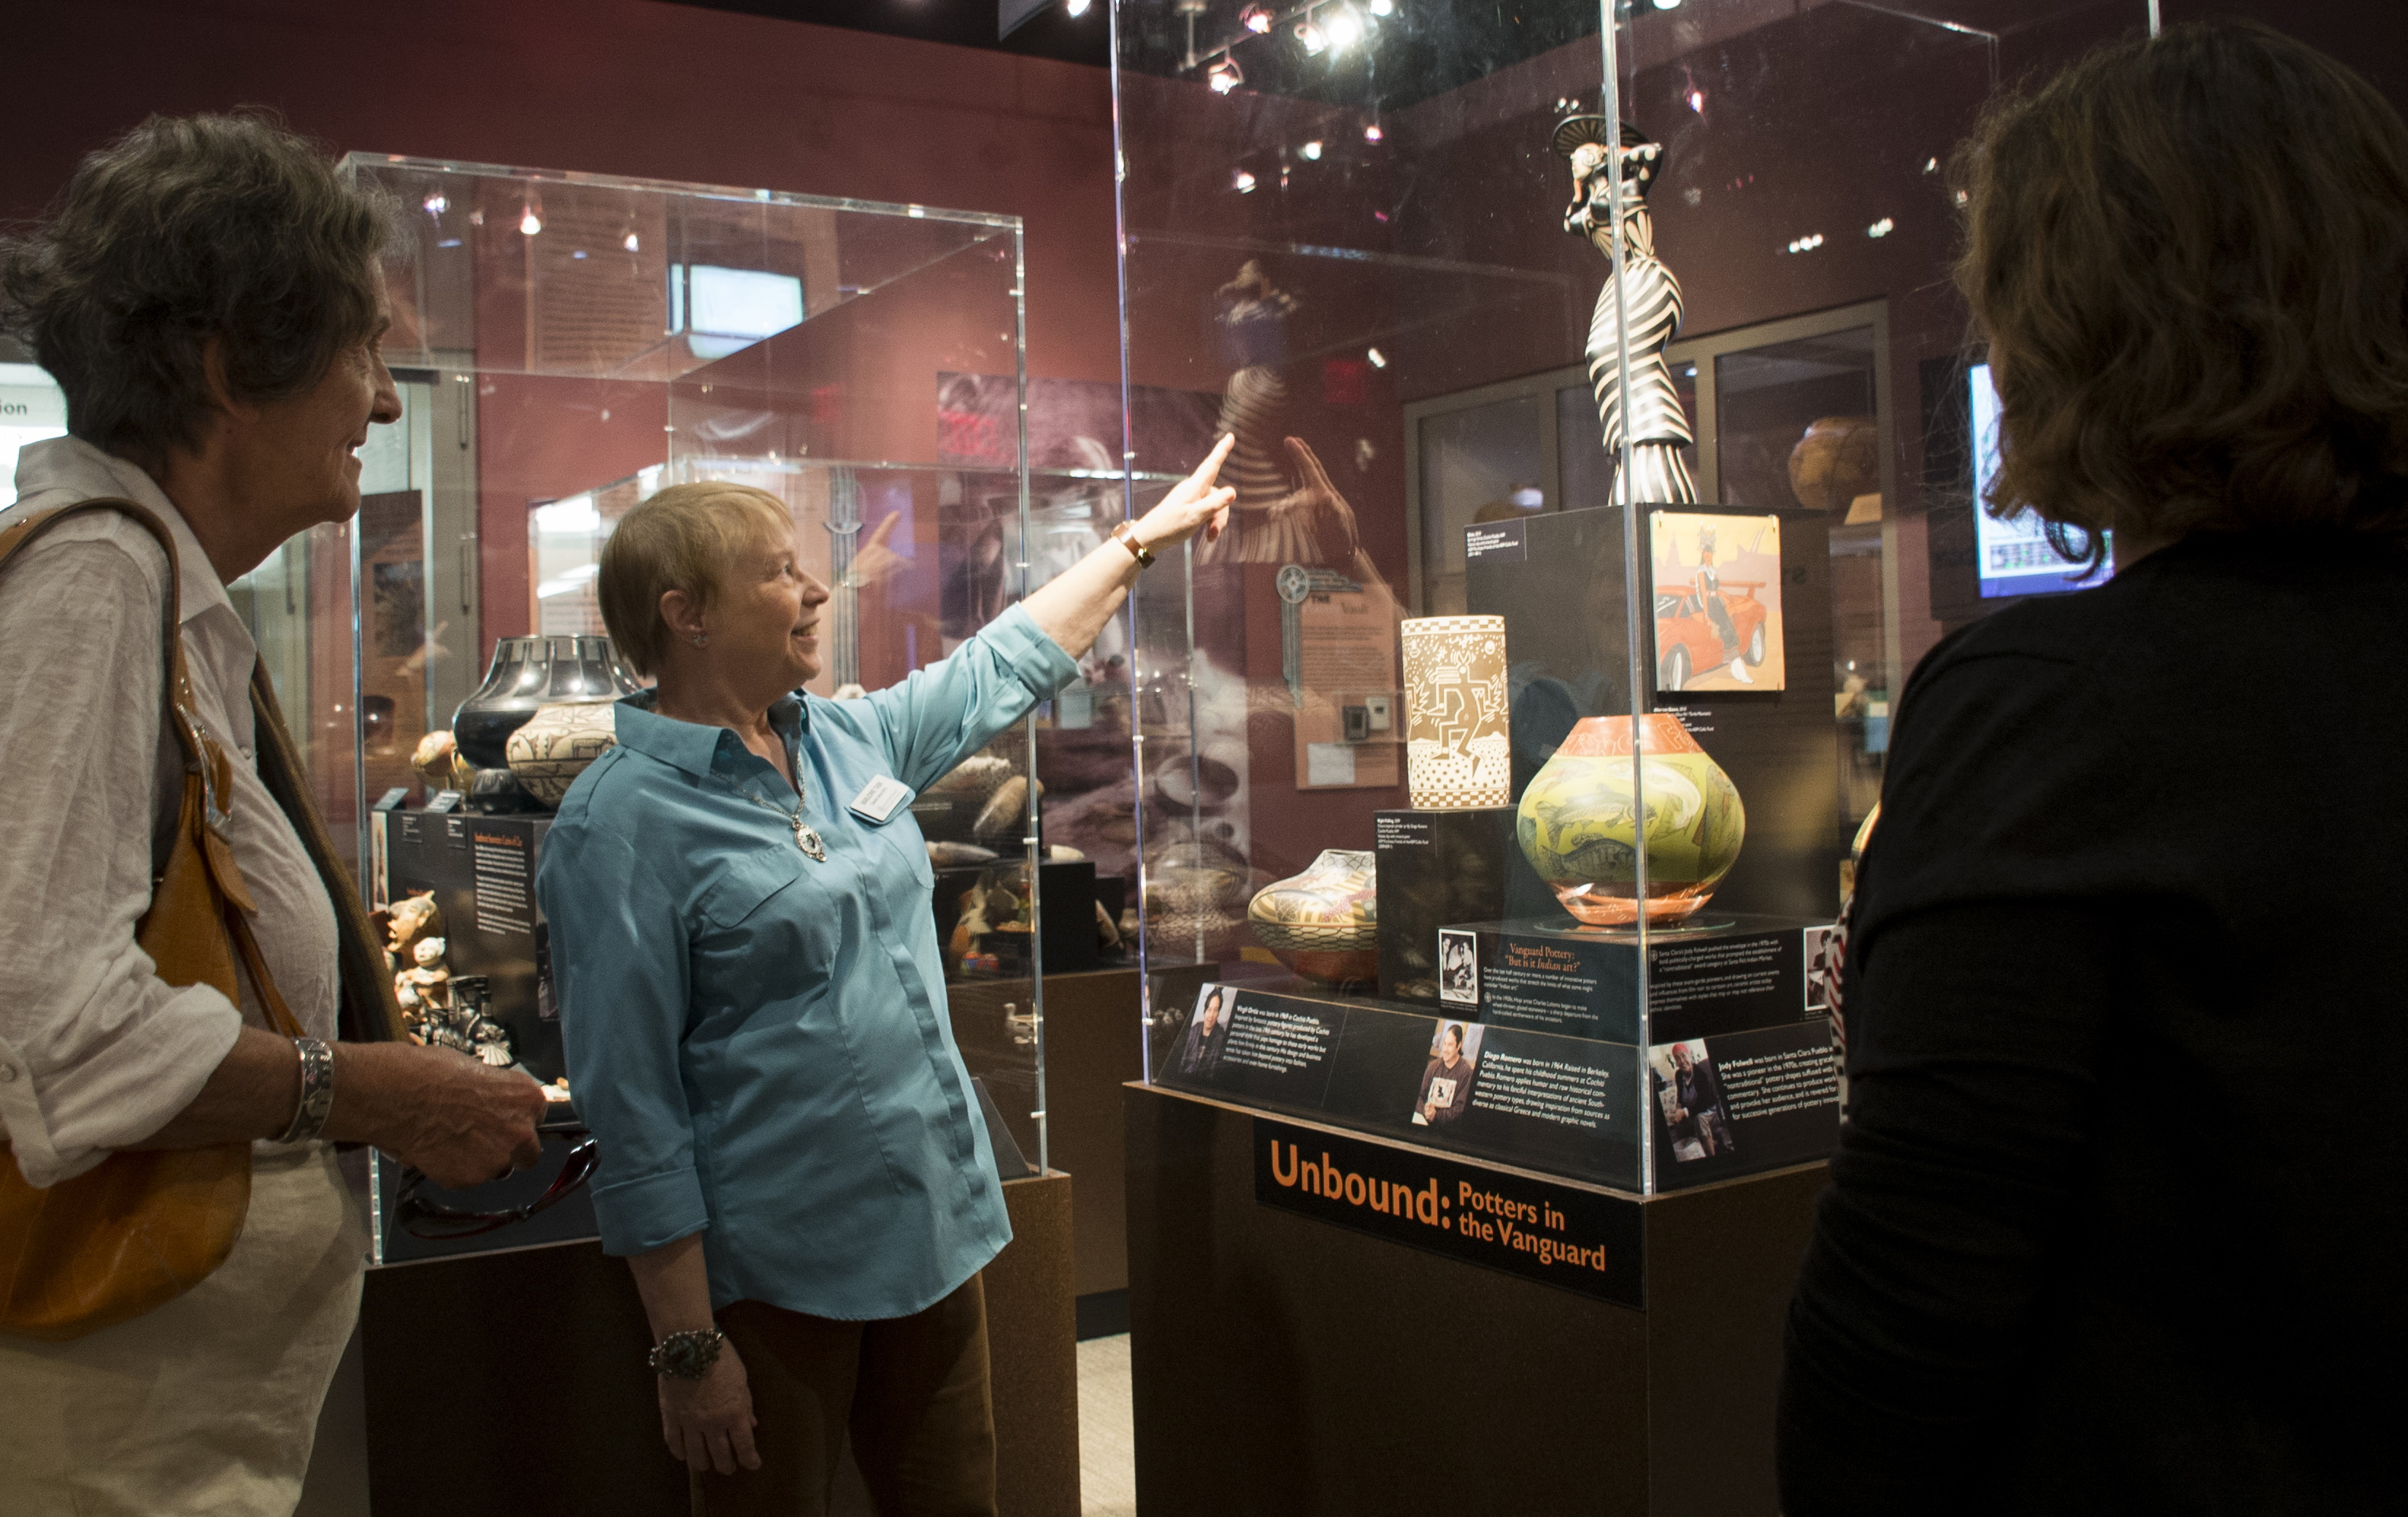 Docents point out important details in the exhibits